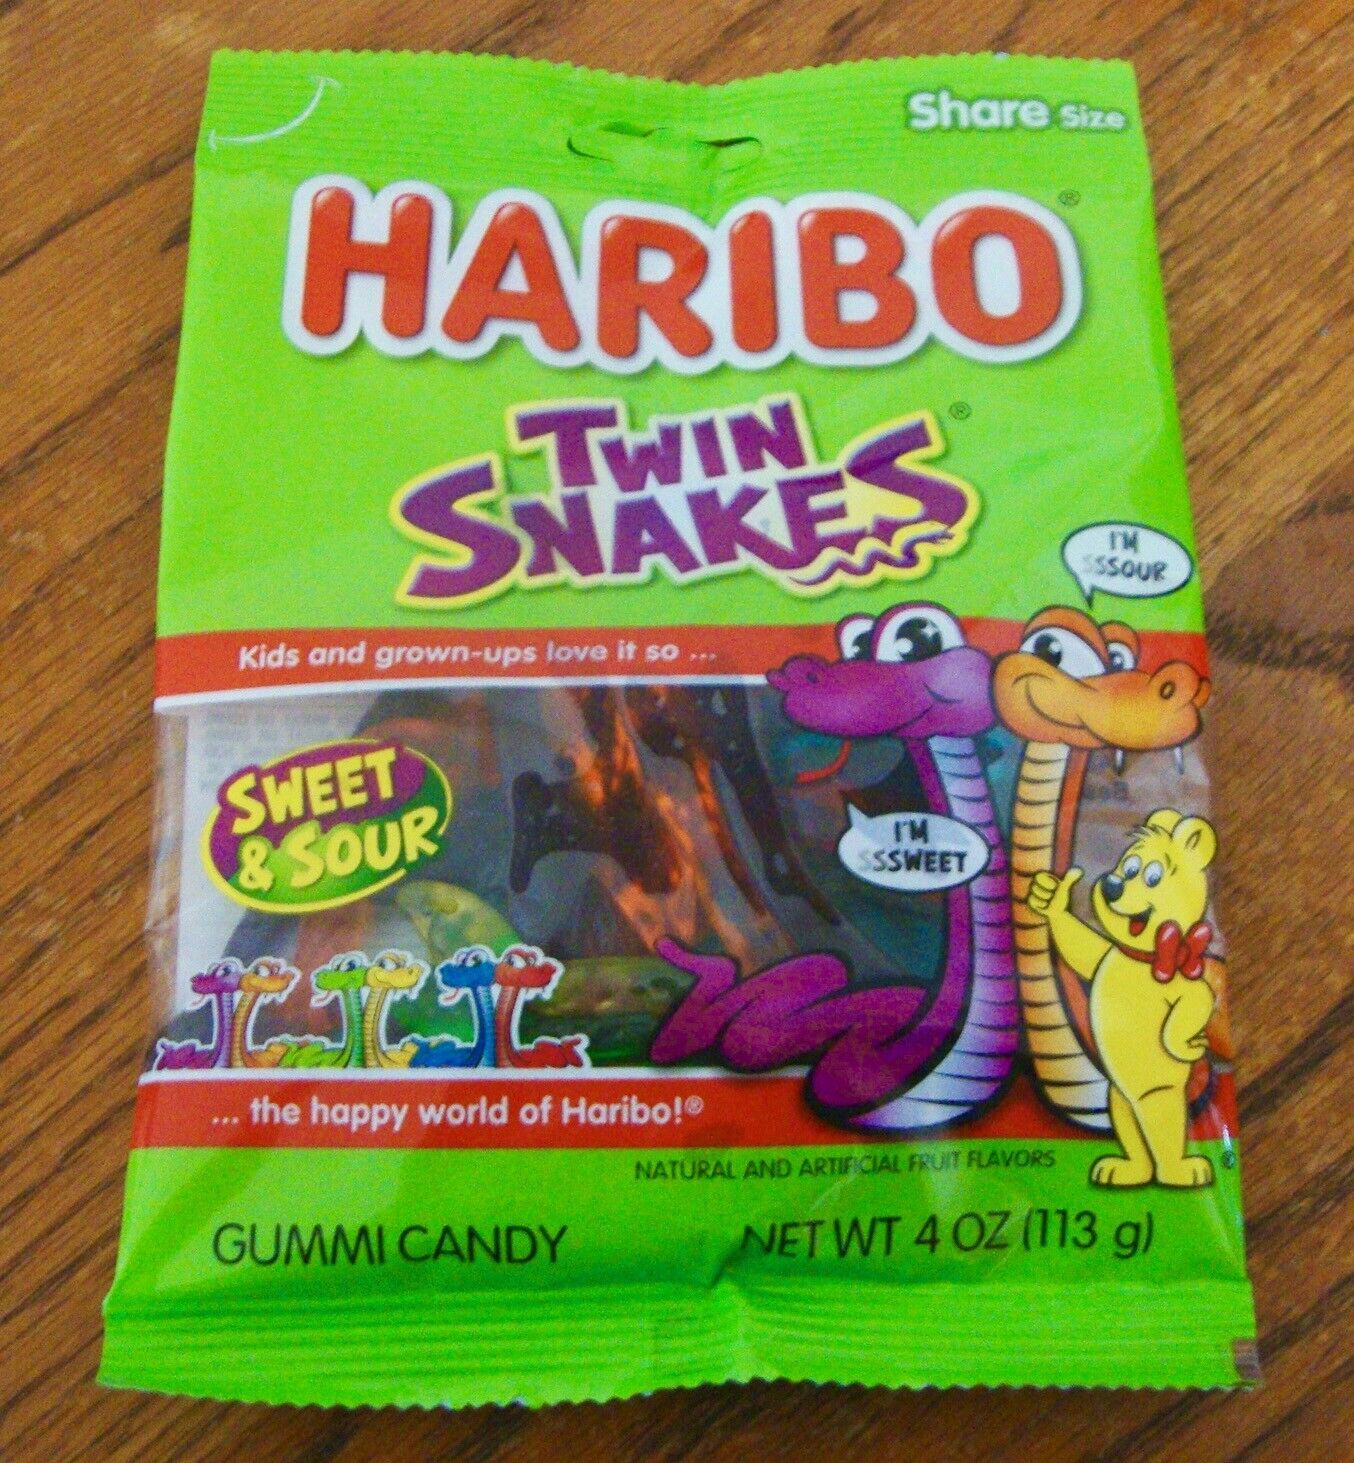 HARIBO Twin Snakes Gummi Candy Sweet Sour 6 Flavors Chewy Fat Free (1) 4 oz pkg